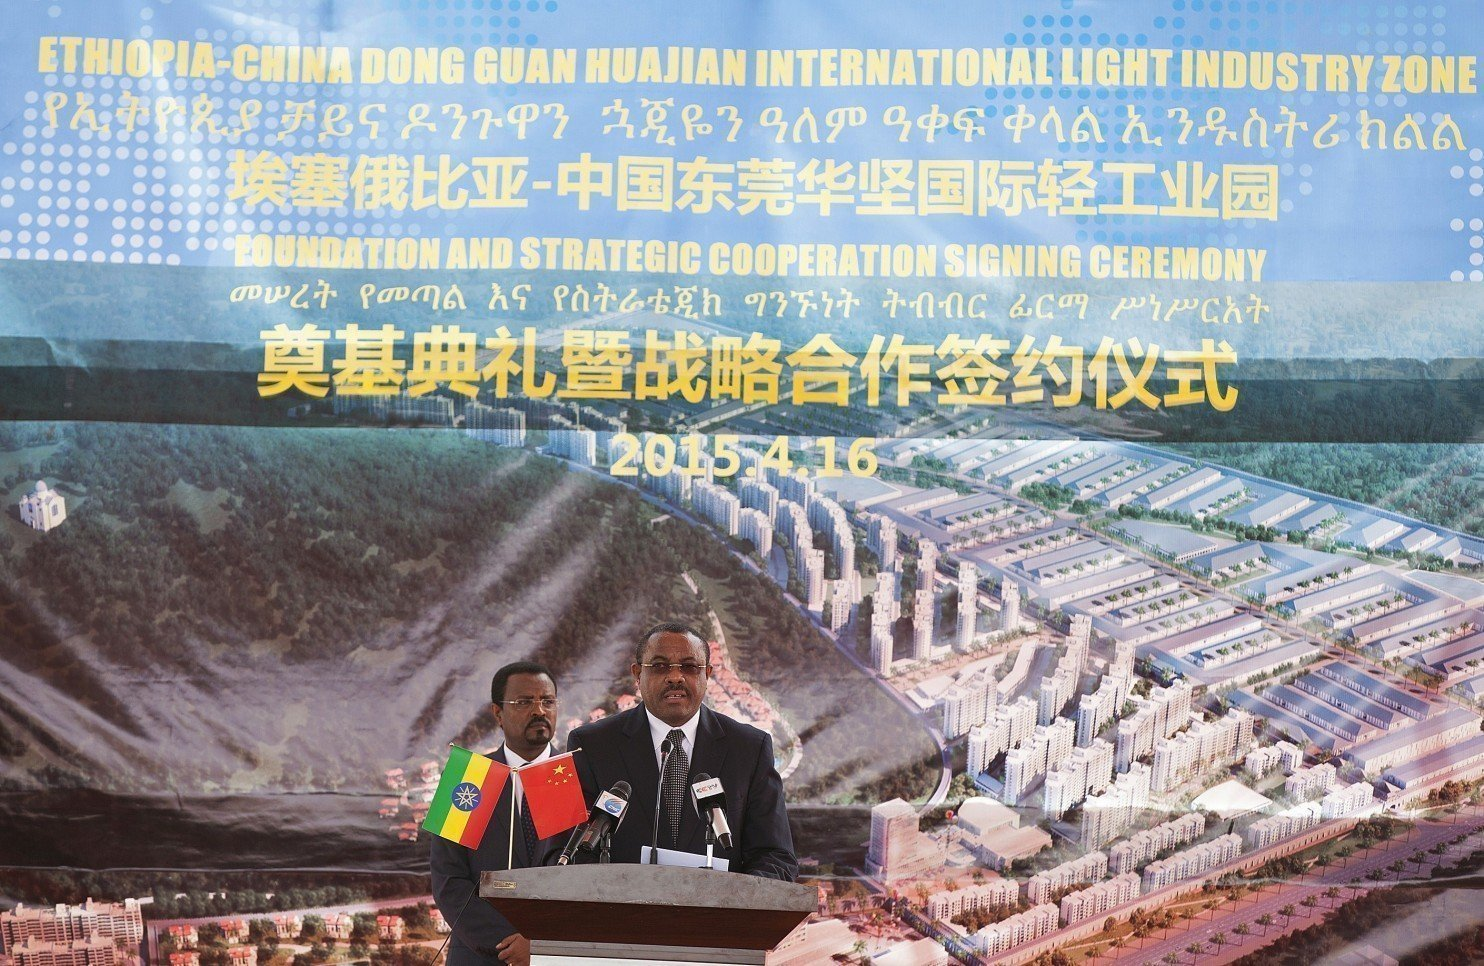 Hailemariam Desalegn, Prime Minister of Ethiopia, speaks during the opening ceremony for the groundbreaking of the Ethiopia-China Dong Guan Huajian International Light Industrial Zone outside of Addis Ababa on April 16, 2015. (Zacharias Abubeker/AFP/Getty Images)